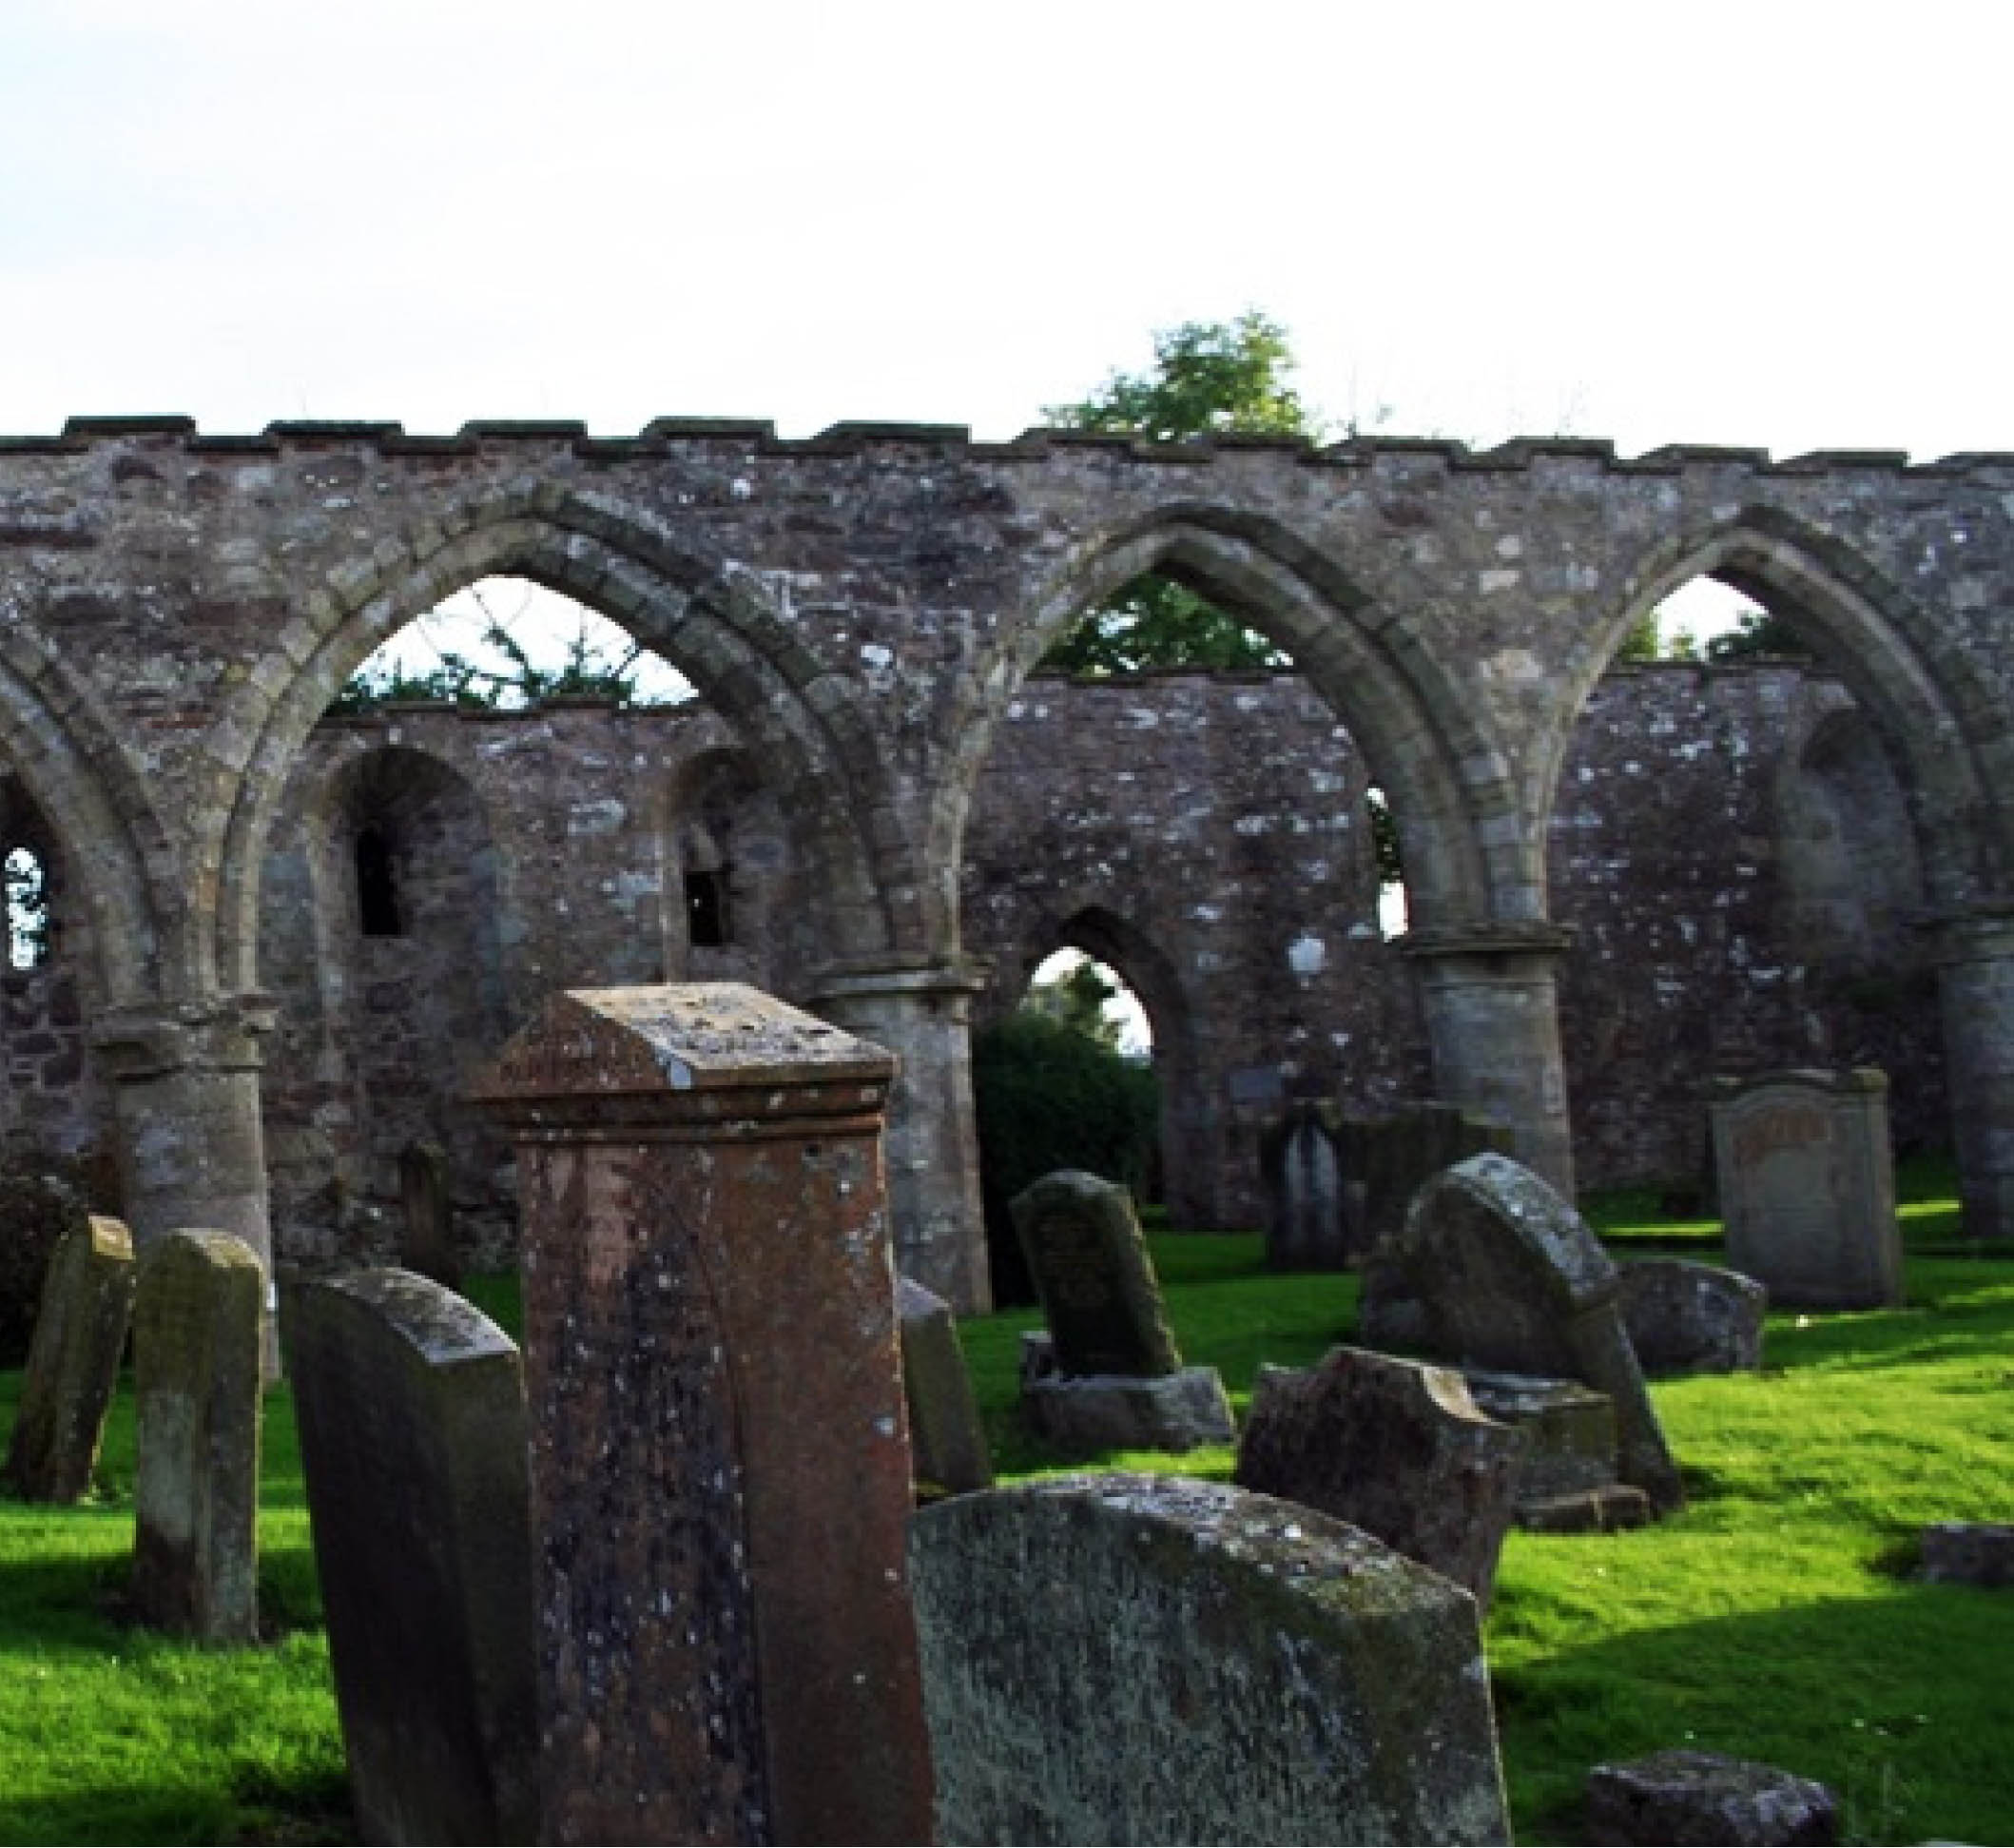 The Medieval ruins of St. Kentigern's Church  in Lanark